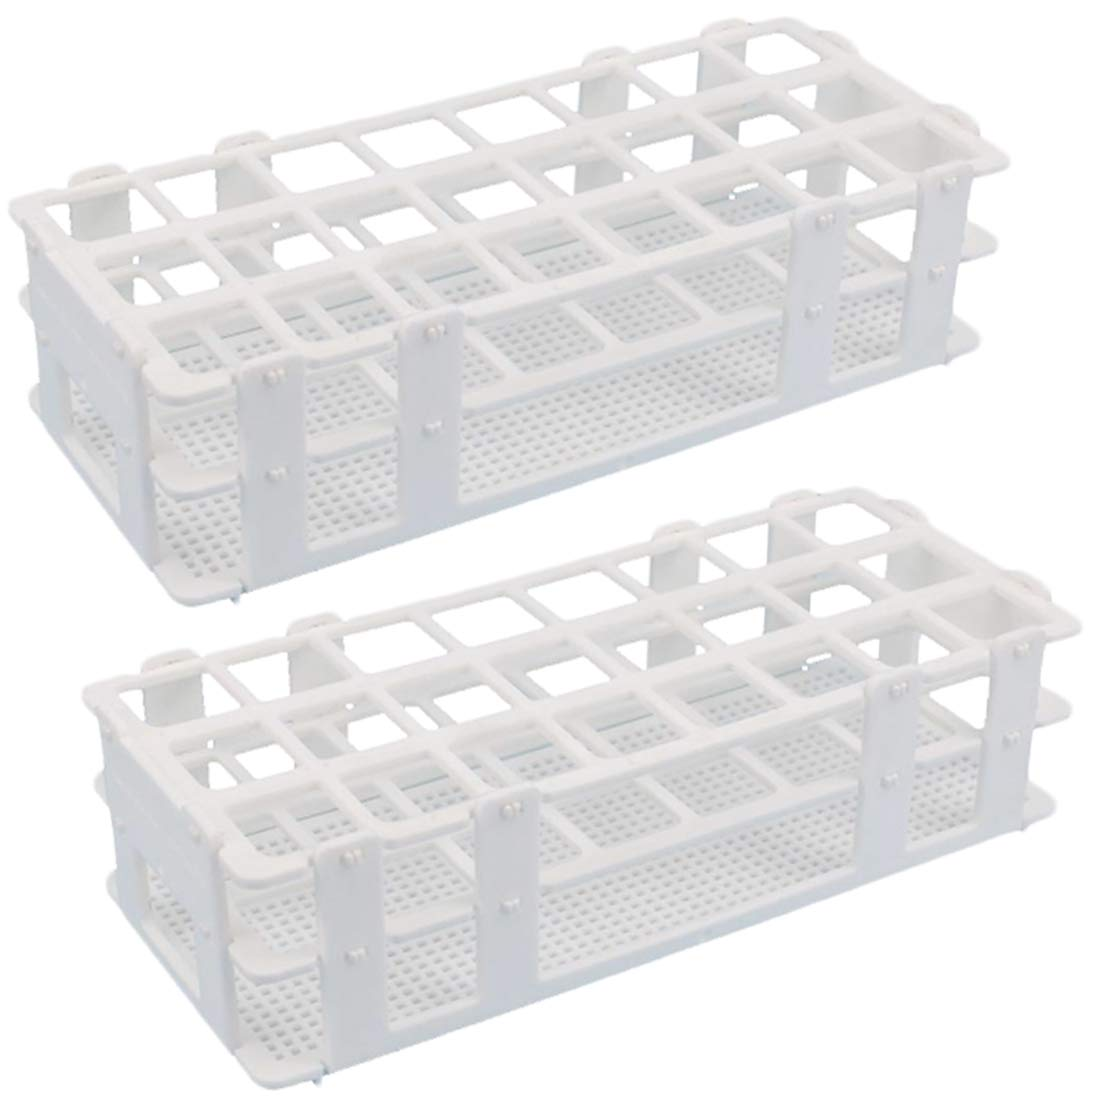 Plastic Test Tube Rack - Buytra 2 Pack 24 Holes Lab Test Tube Rack Holder for 25mm Test Tubes, Detachable, White by Buytra